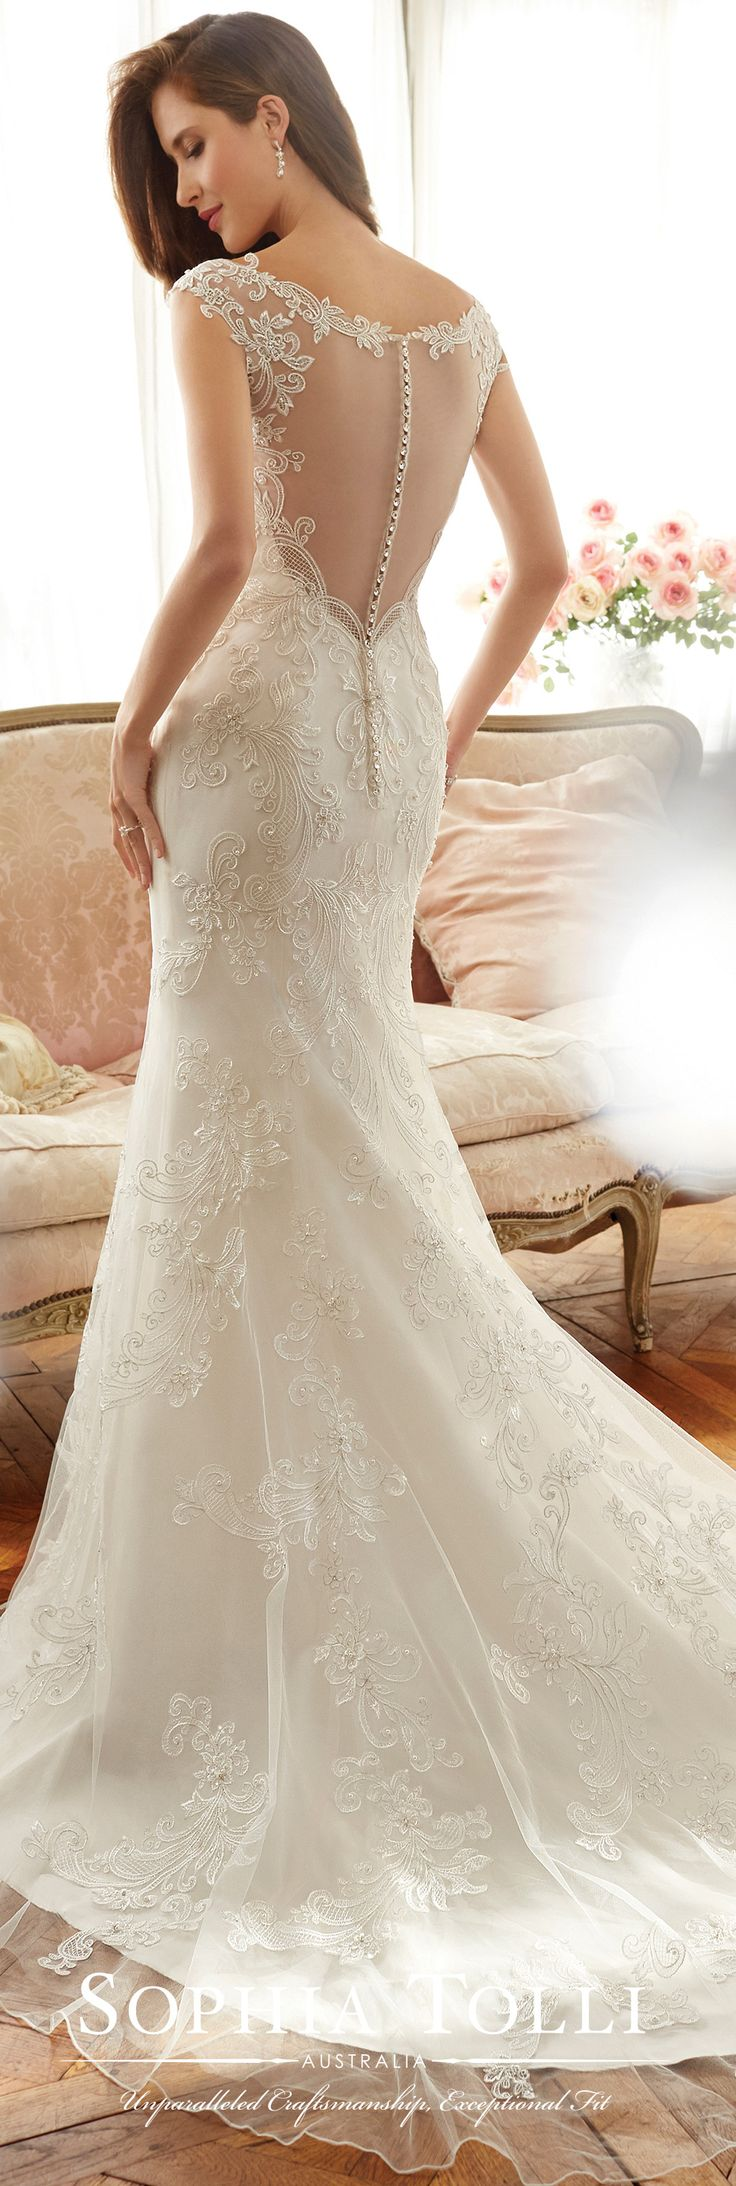 Stunning Sophia Tolli Spring Wedding Gown Collection Style No Y Mimi lace trumpet